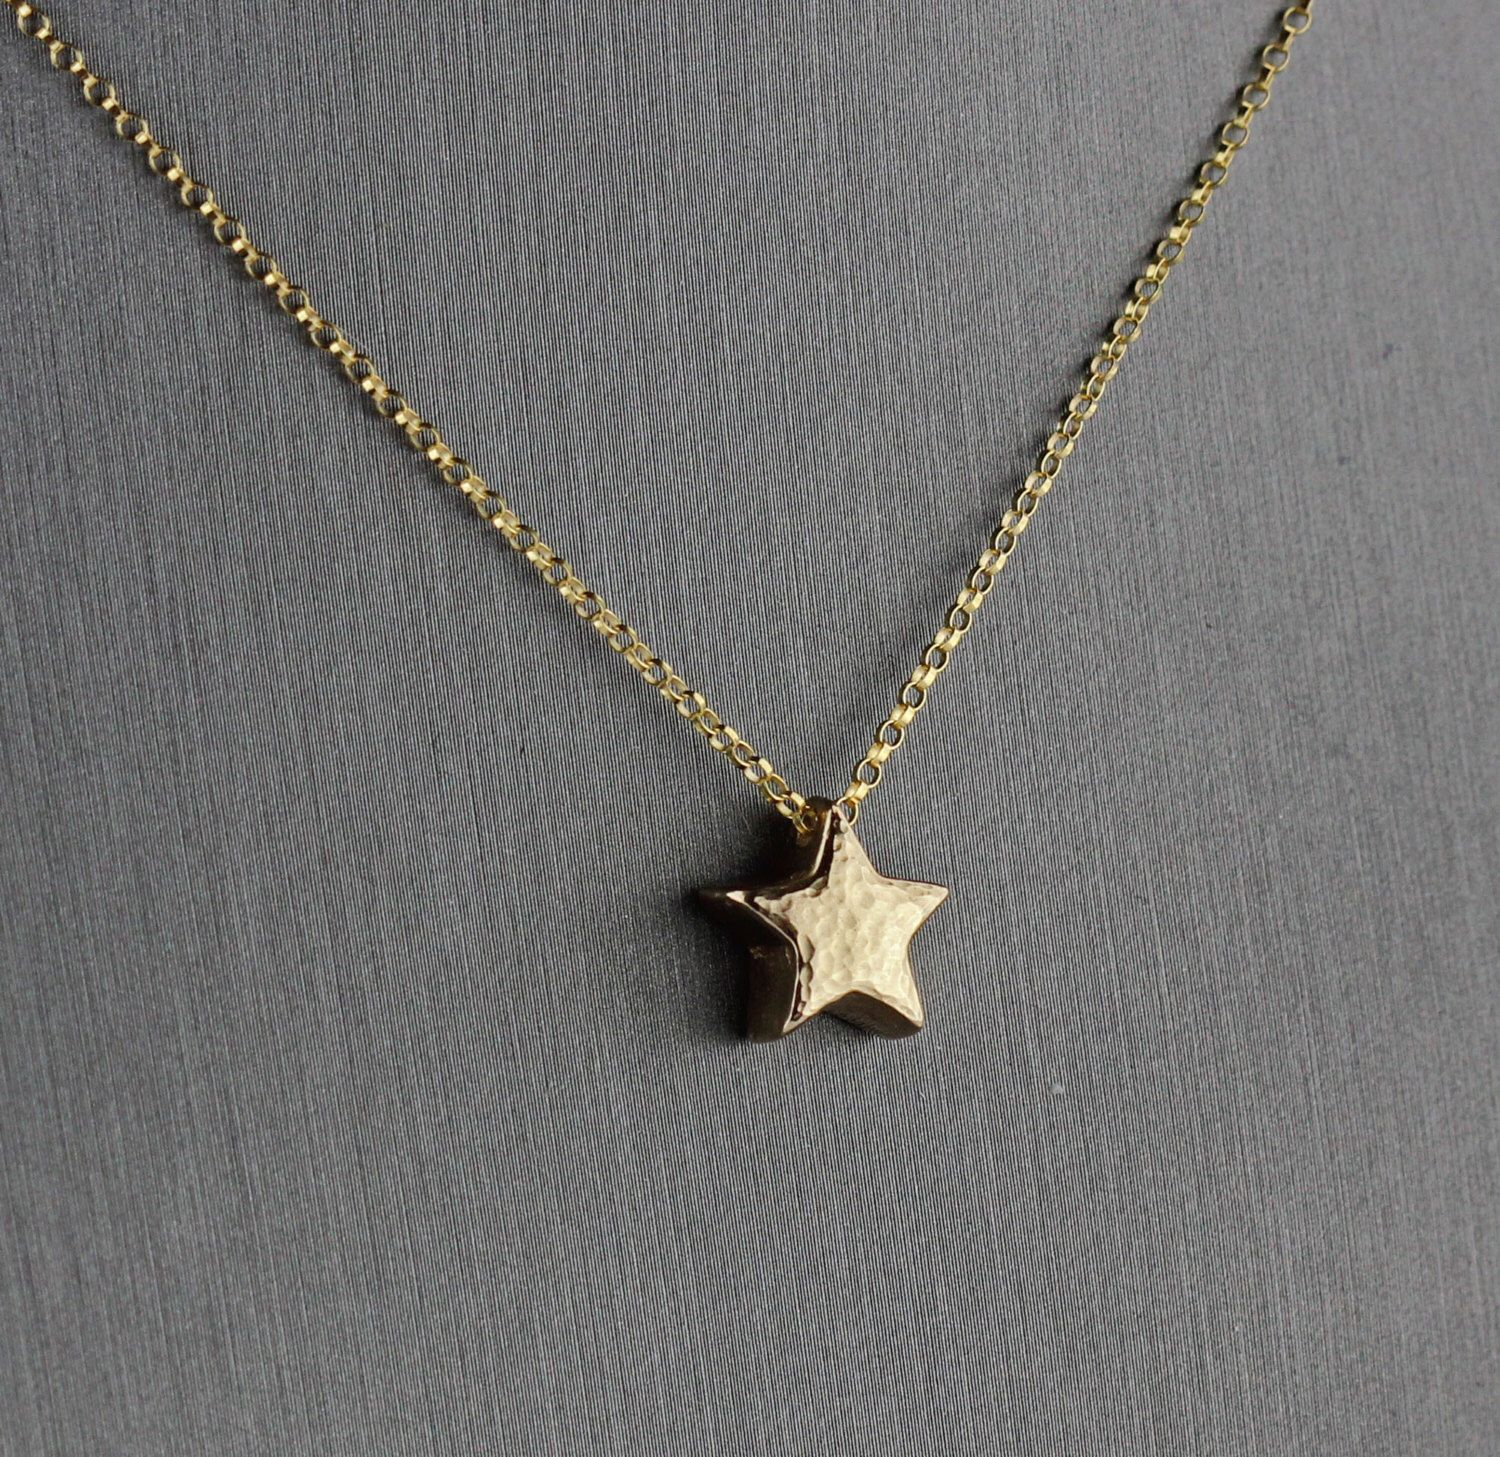 Tiny star necklace gold star pendant gold bronze metal clay jewelry